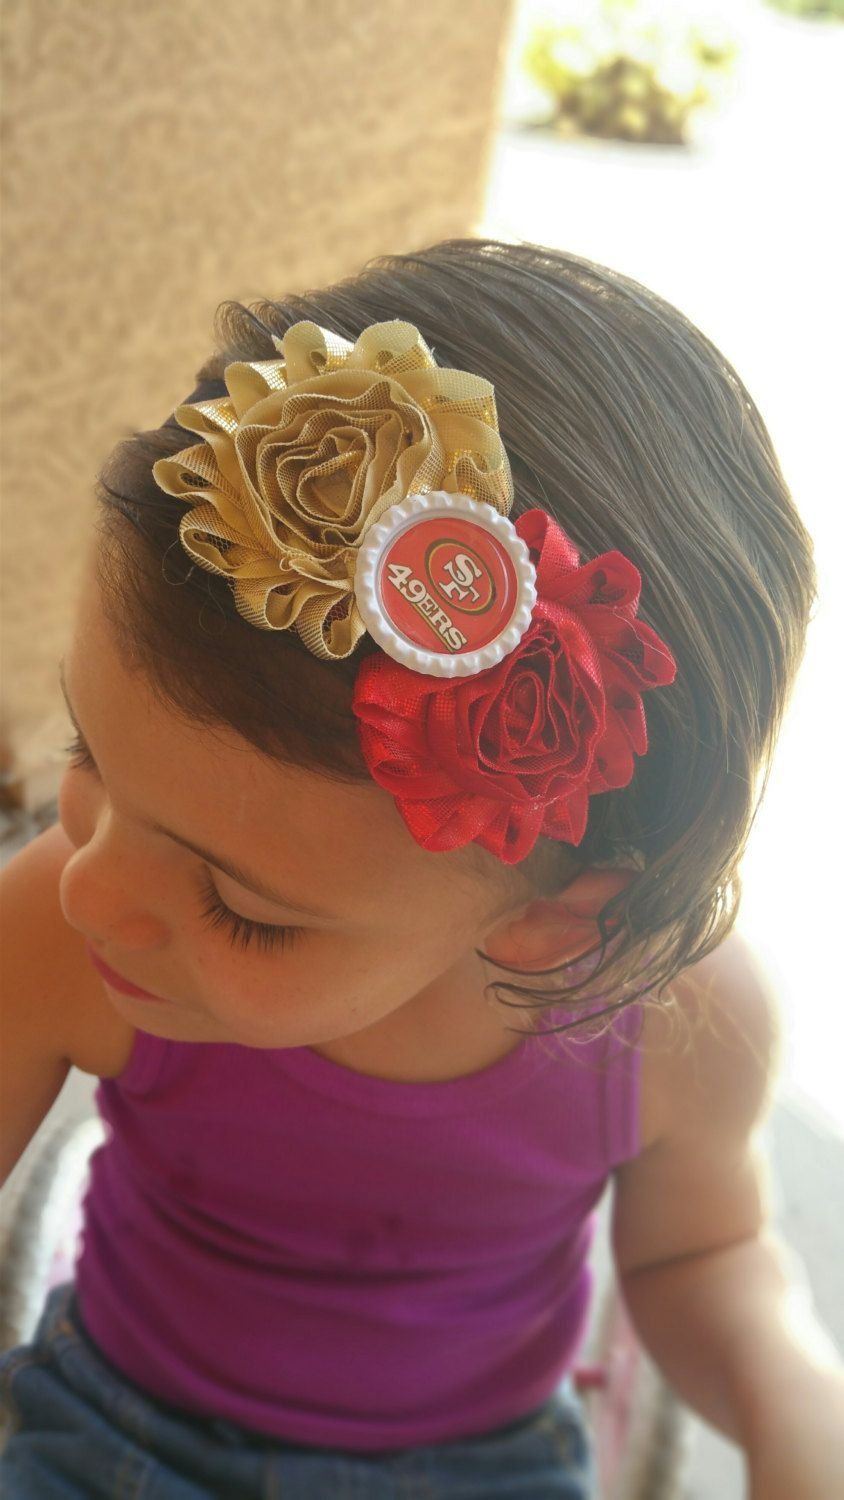 Katiedid Curiouser And Curiouser The San Francisco: Baby, Infant, Toddler, Girls San Francisco 49er's Headband